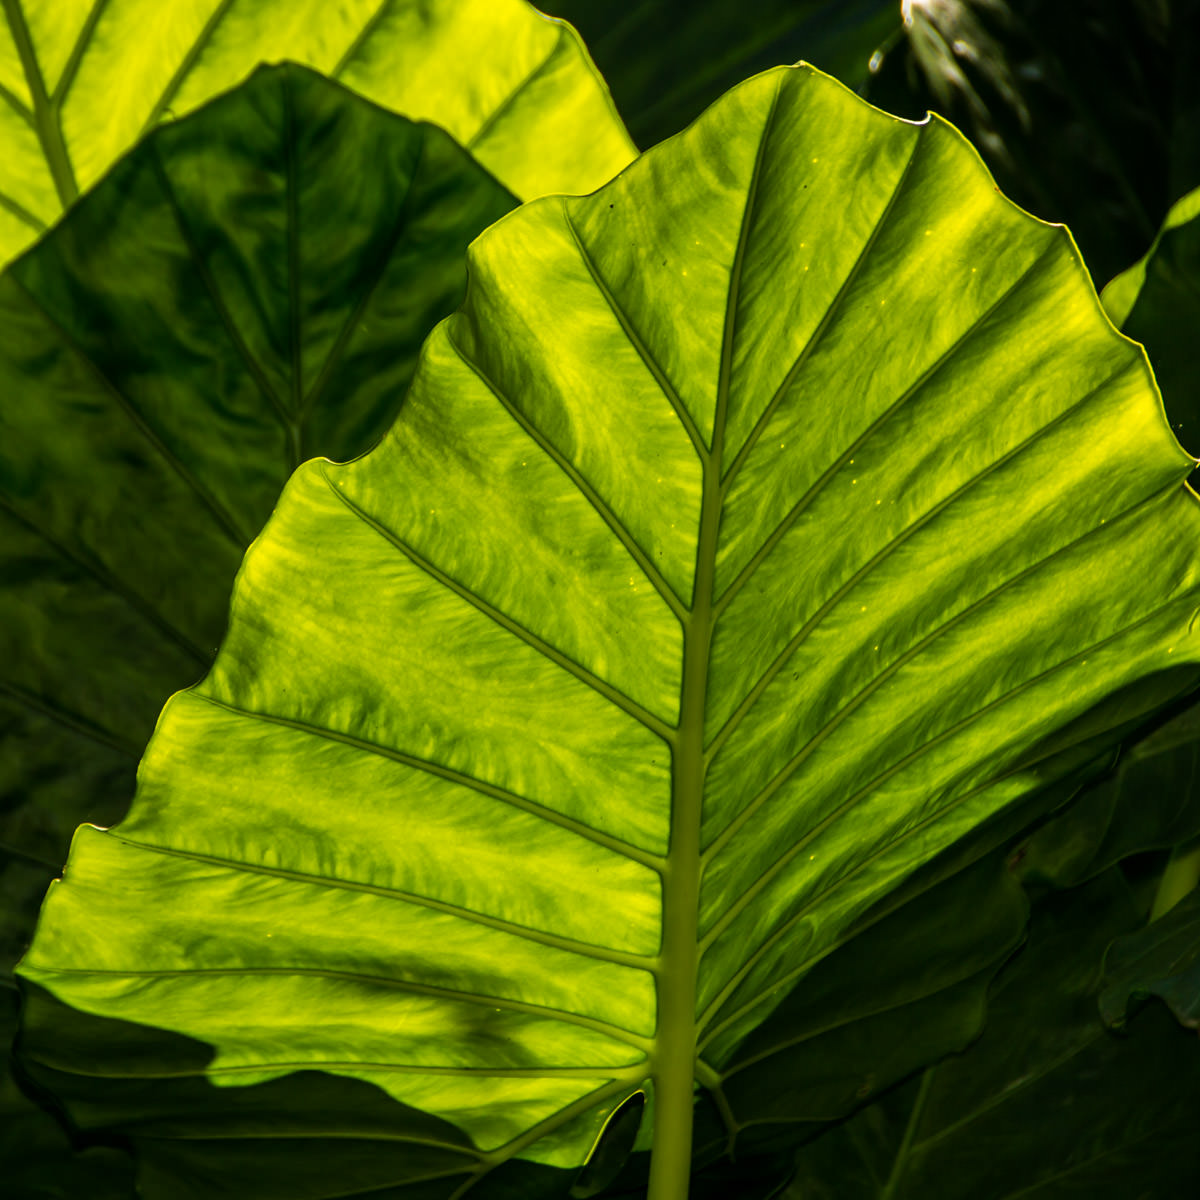 Tropical leaves spotted at the Dallas Arboretum.